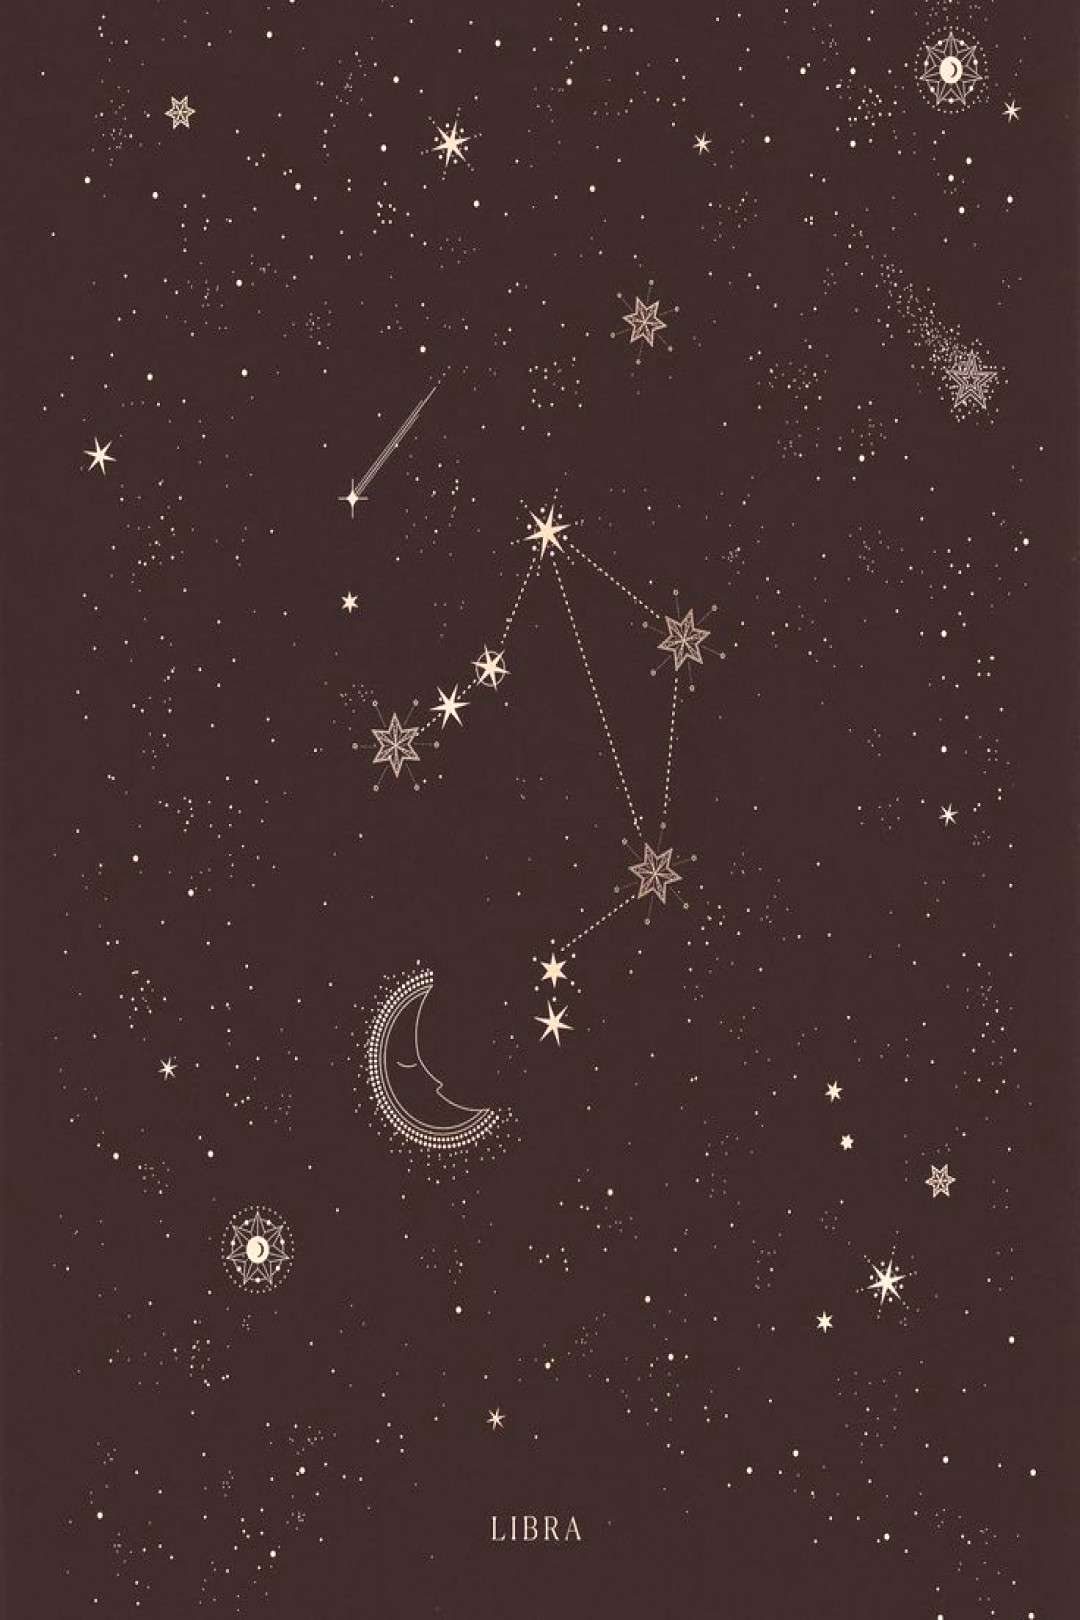 Star Constellations Overlay ; Constellations Overlay star constellations overlay & constellations o